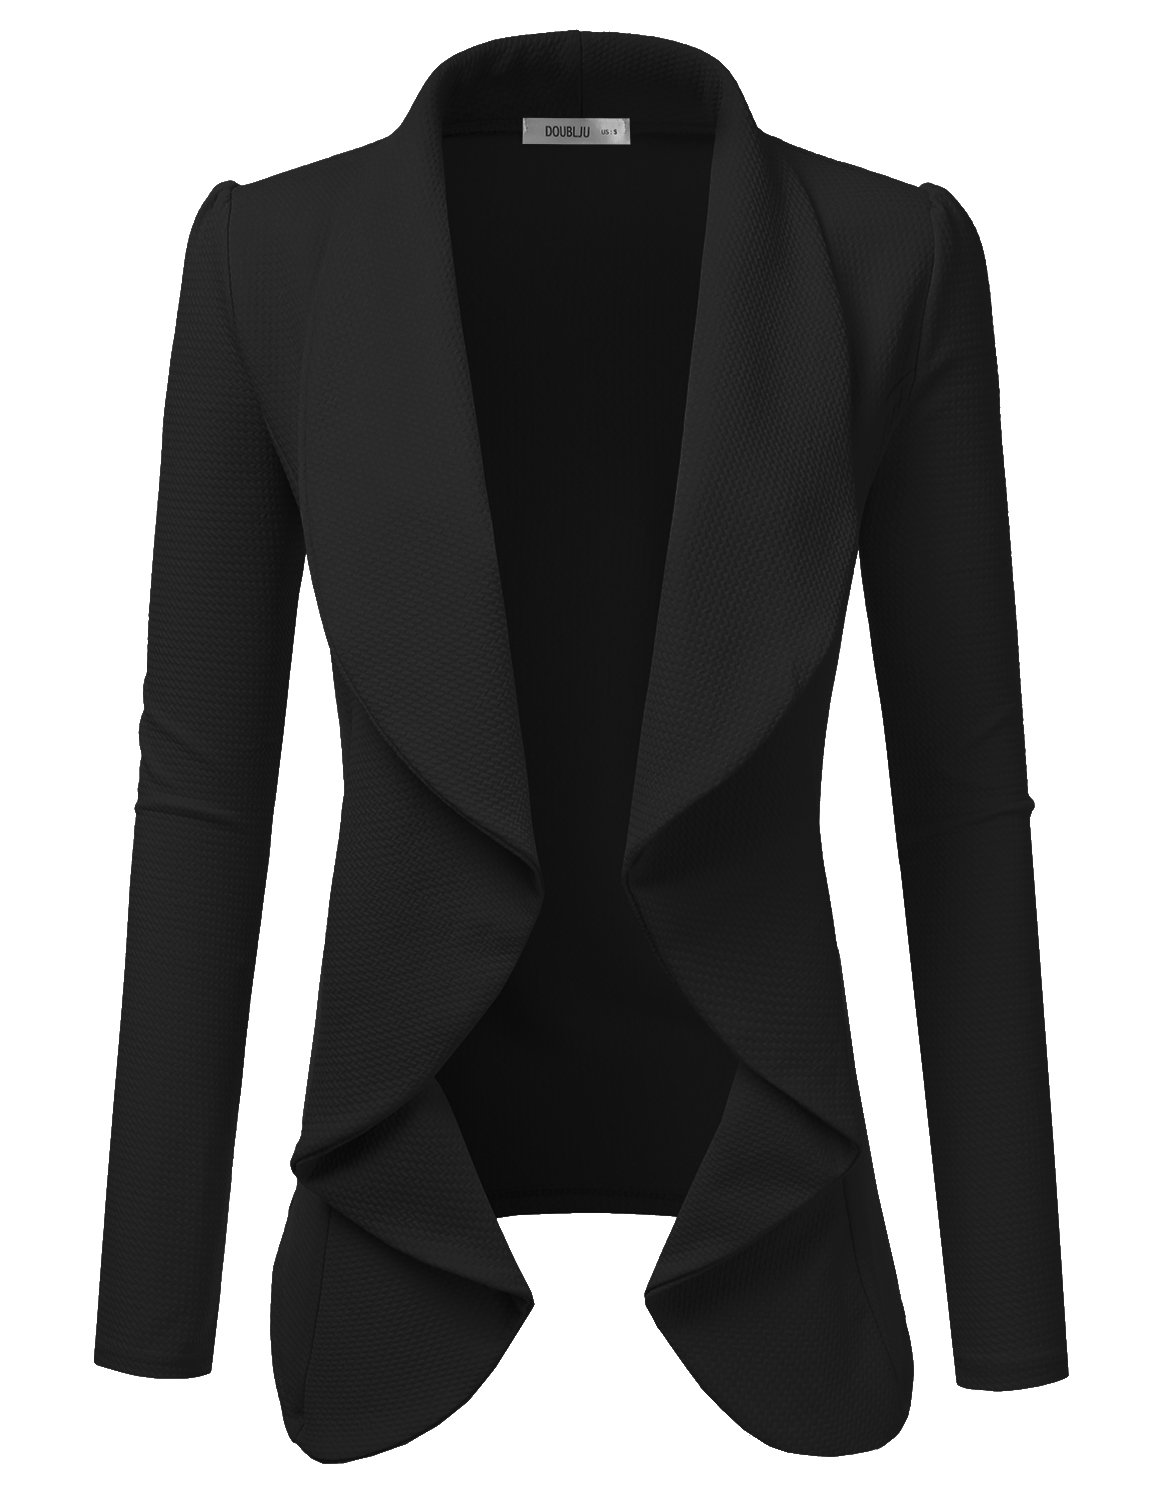 Doublju Classic Draped Open Front Blazer for Women with Plus Size Black X-Large